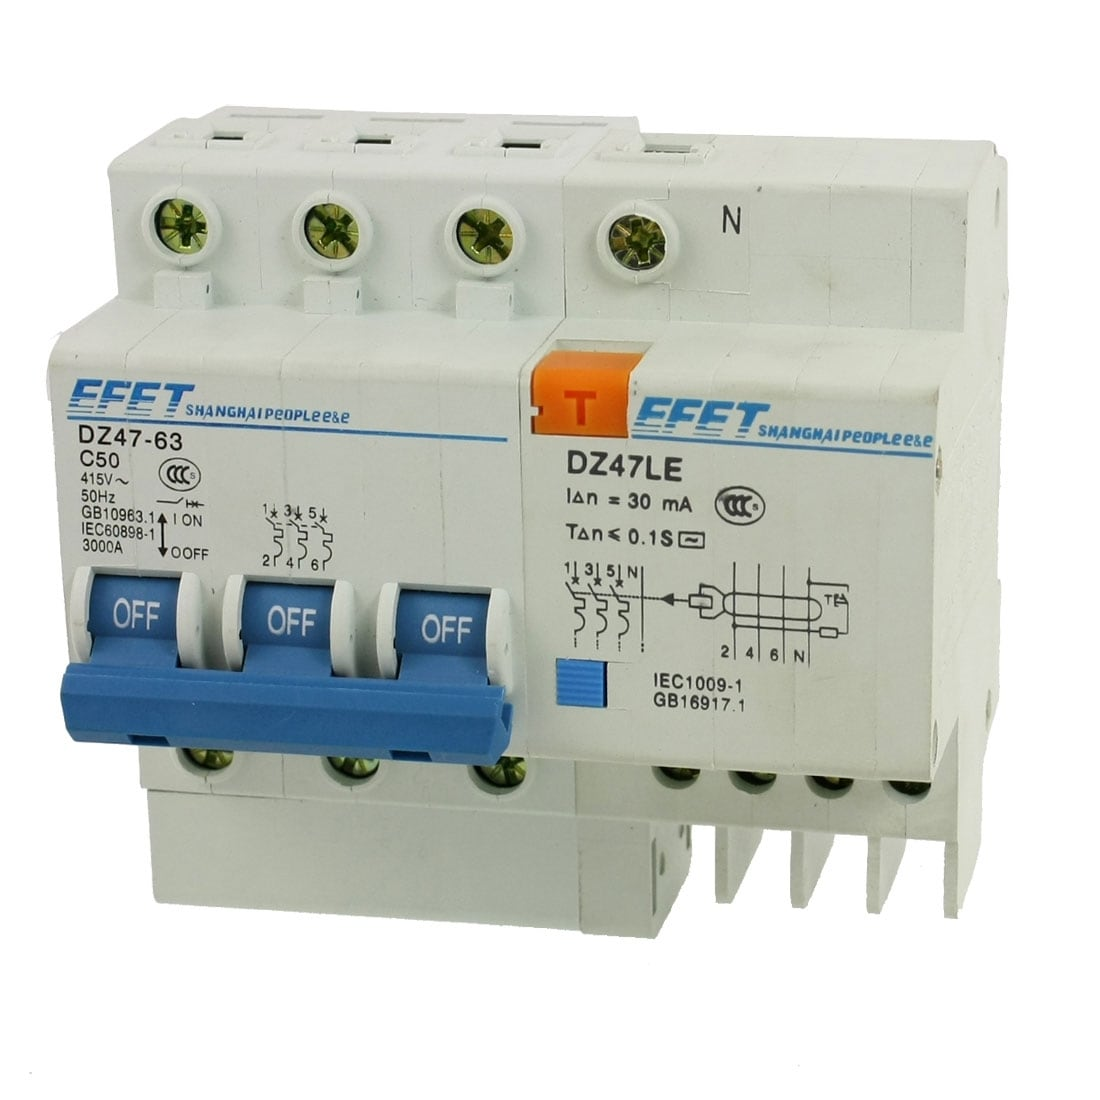 Shop Dz47 63 C50 3p Mcb Mini Circuit Breaker W Dz47le Earth Leakage House China High Quality On Sale Free Shipping Orders Over 45 18466138